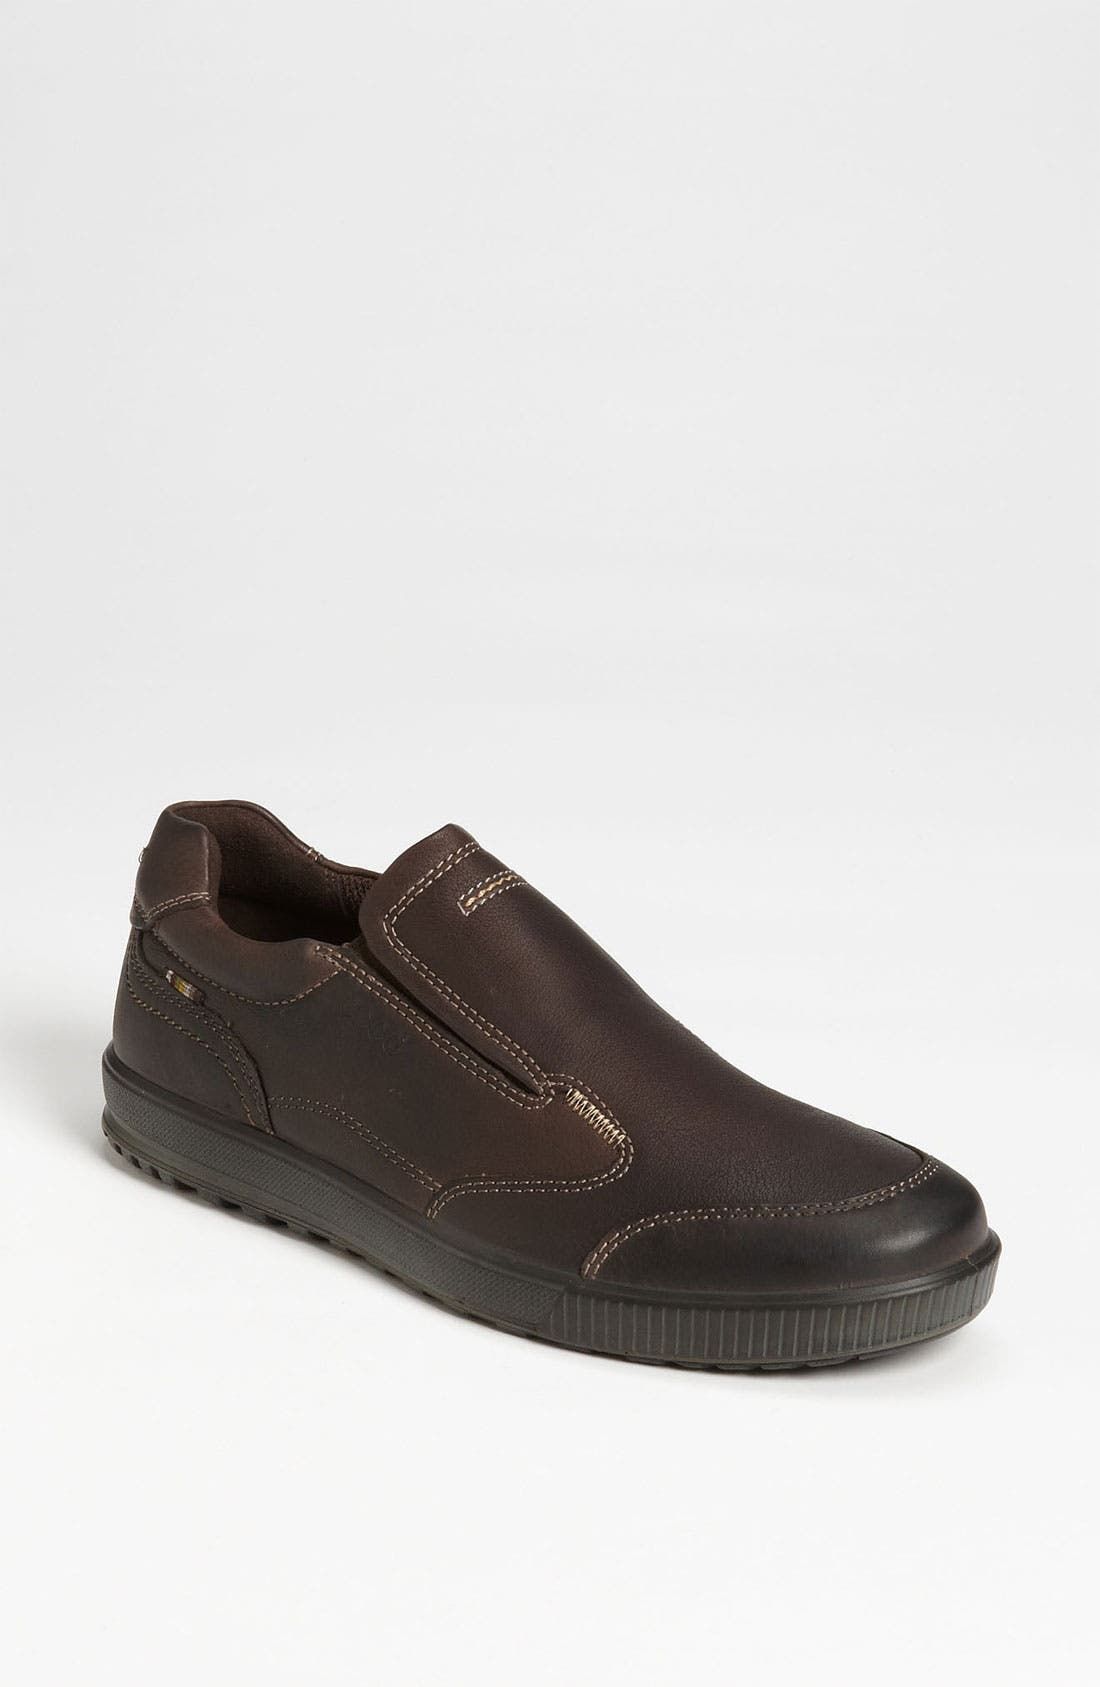 Main Image - ECCO 'Bradley' Slip-On